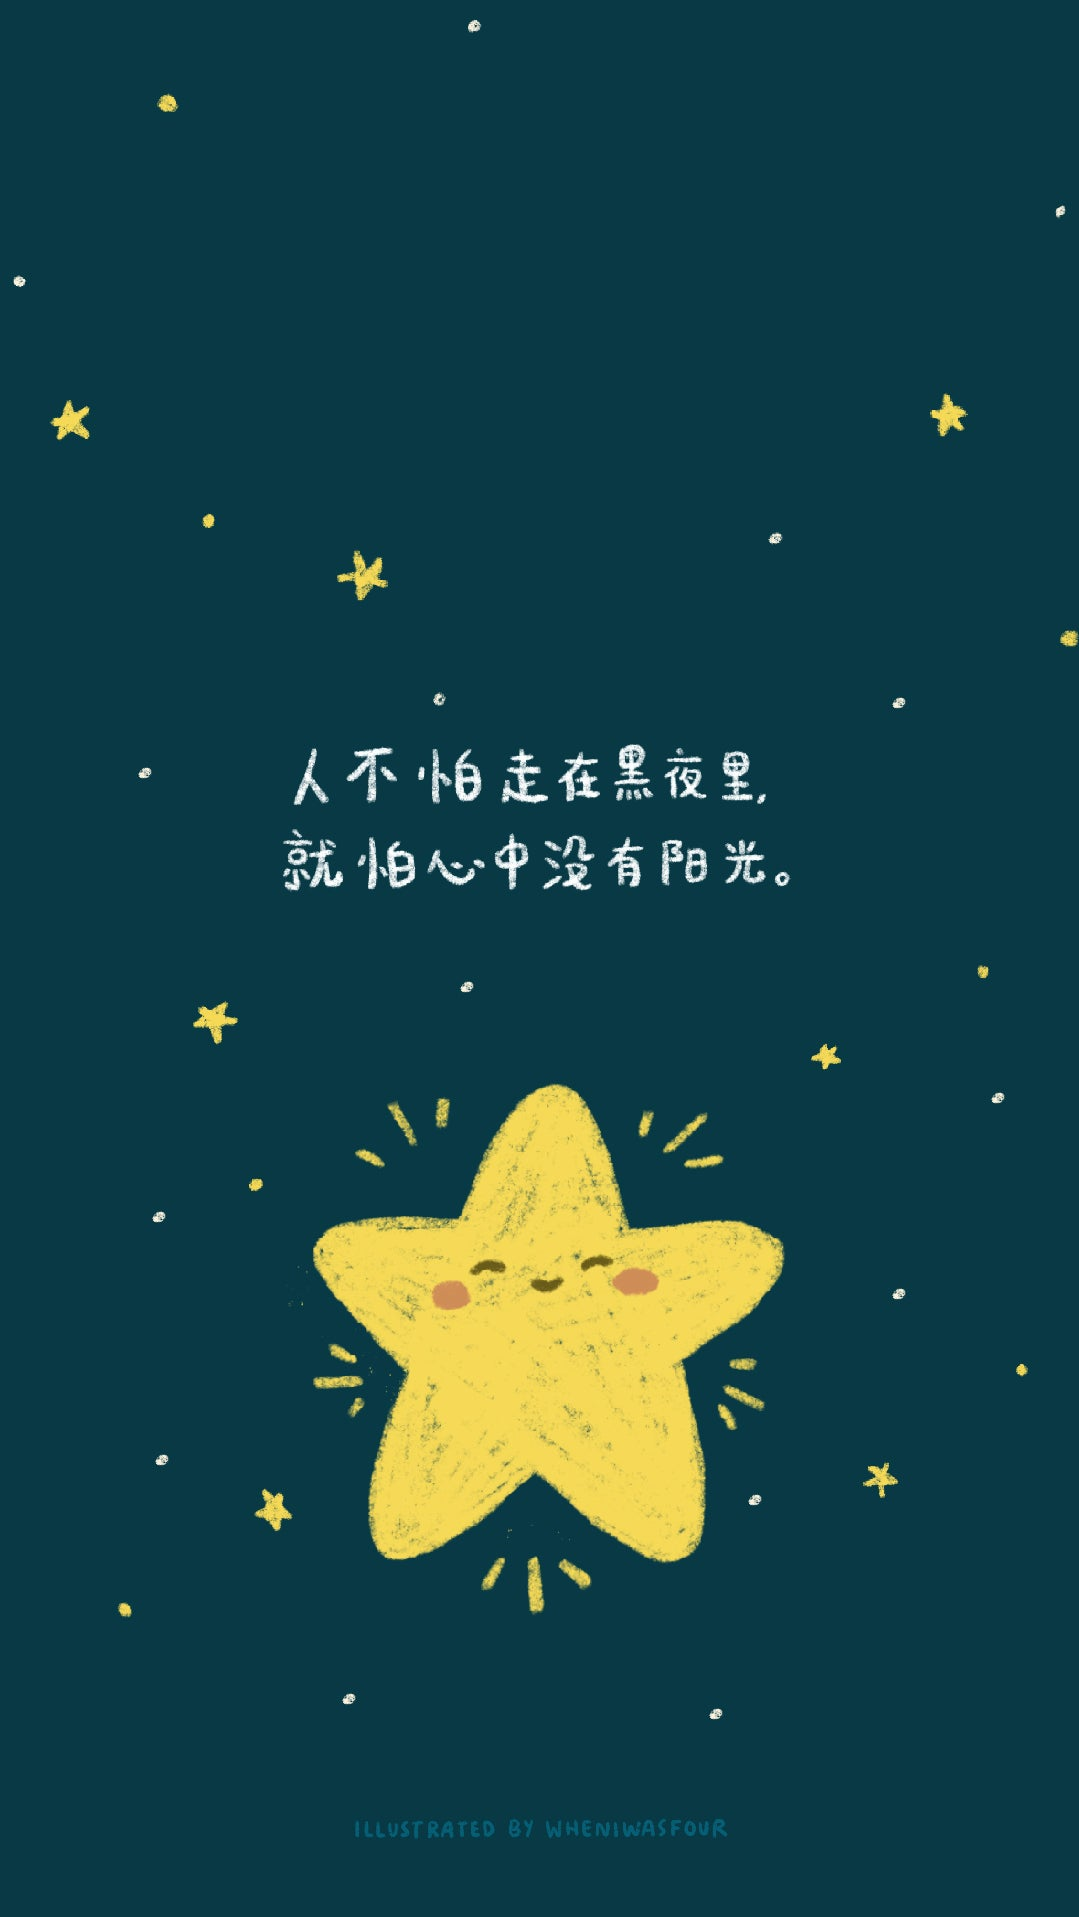 digital wallpaper of a digital illustration of a chinese quote with a bright big star in the centre surrounded by many small other stars and against a dark background